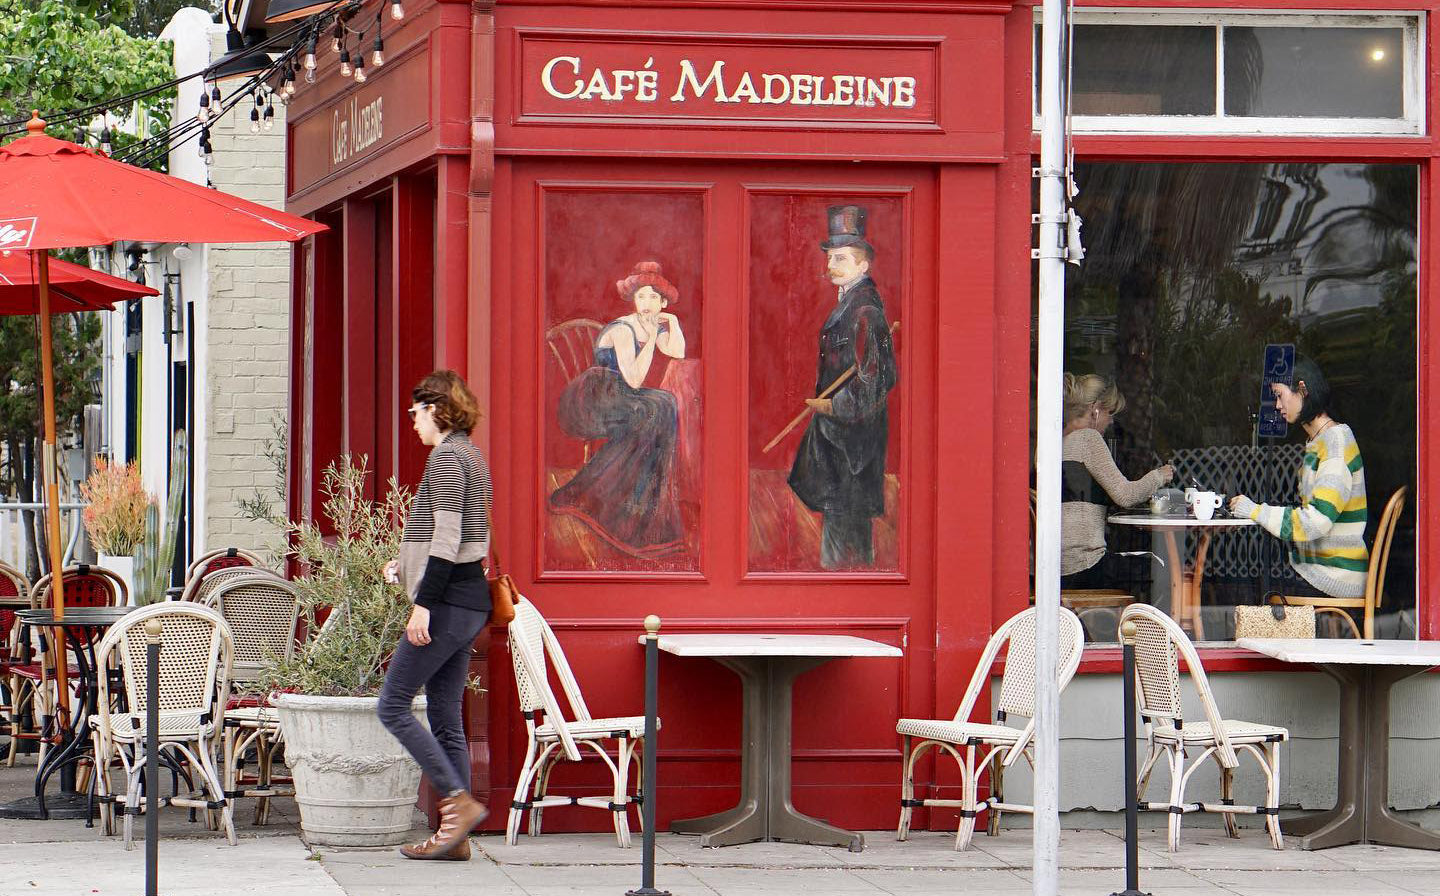 Best SD Restaurants Outdoor Seating: Cafe Madeleine